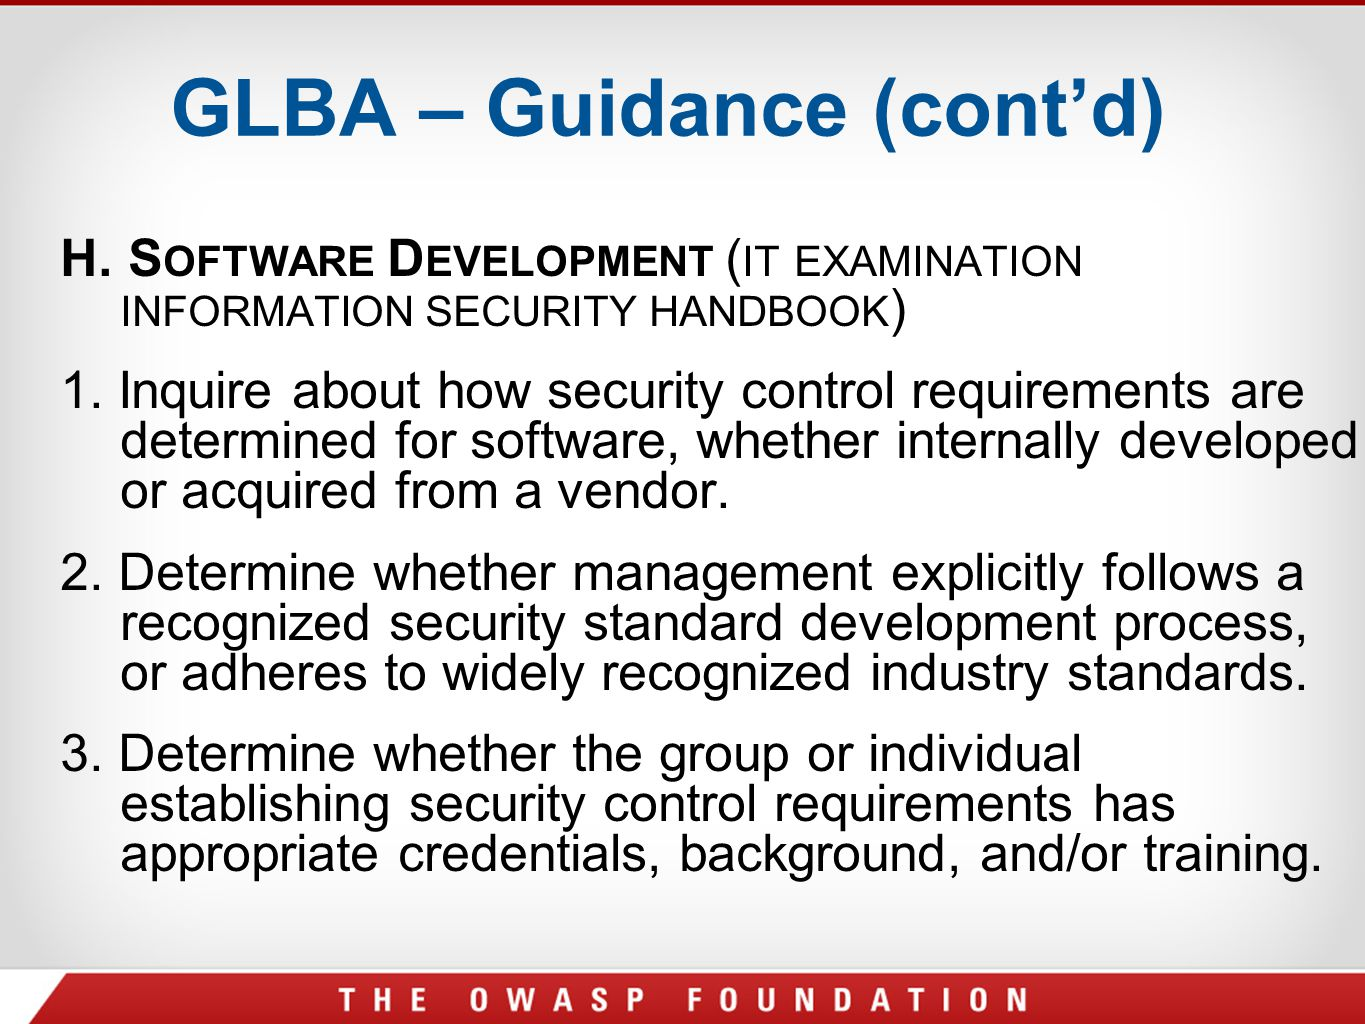 GLBA – Guidance (cont'd) H. S OFTWARE D EVELOPMENT ( IT EXAMINATION INFORMATION SECURITY HANDBOOK ) 1. Inquire about how security control requirements